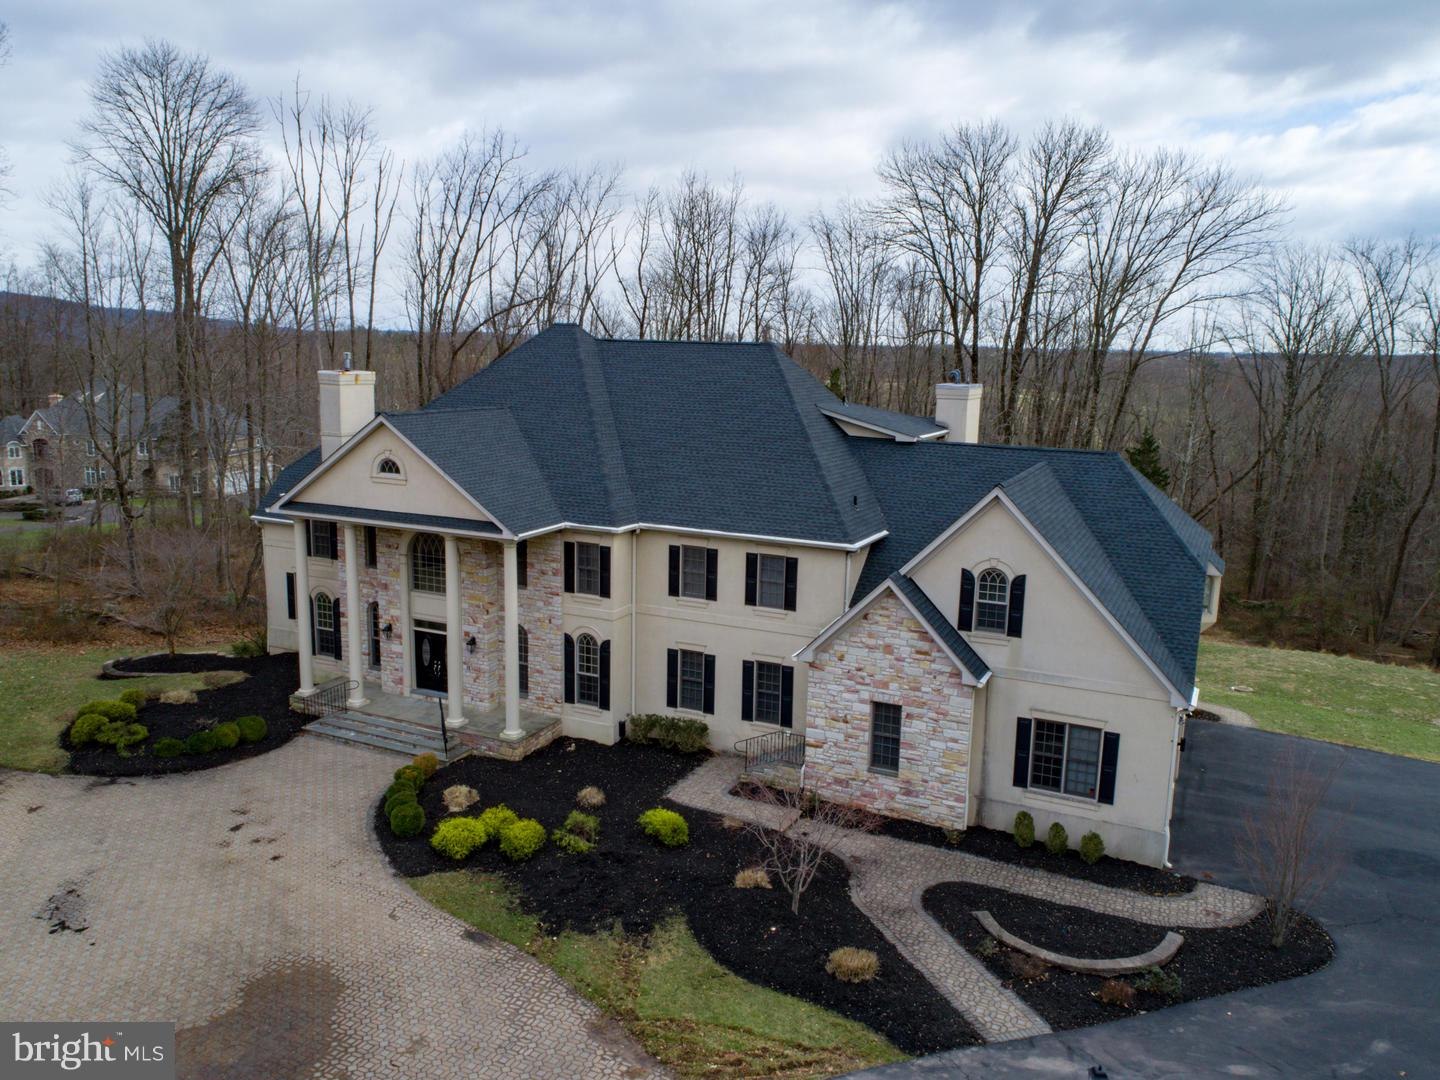 15 GREAT HILLS ROAD, NEW HOPE, PA 18938